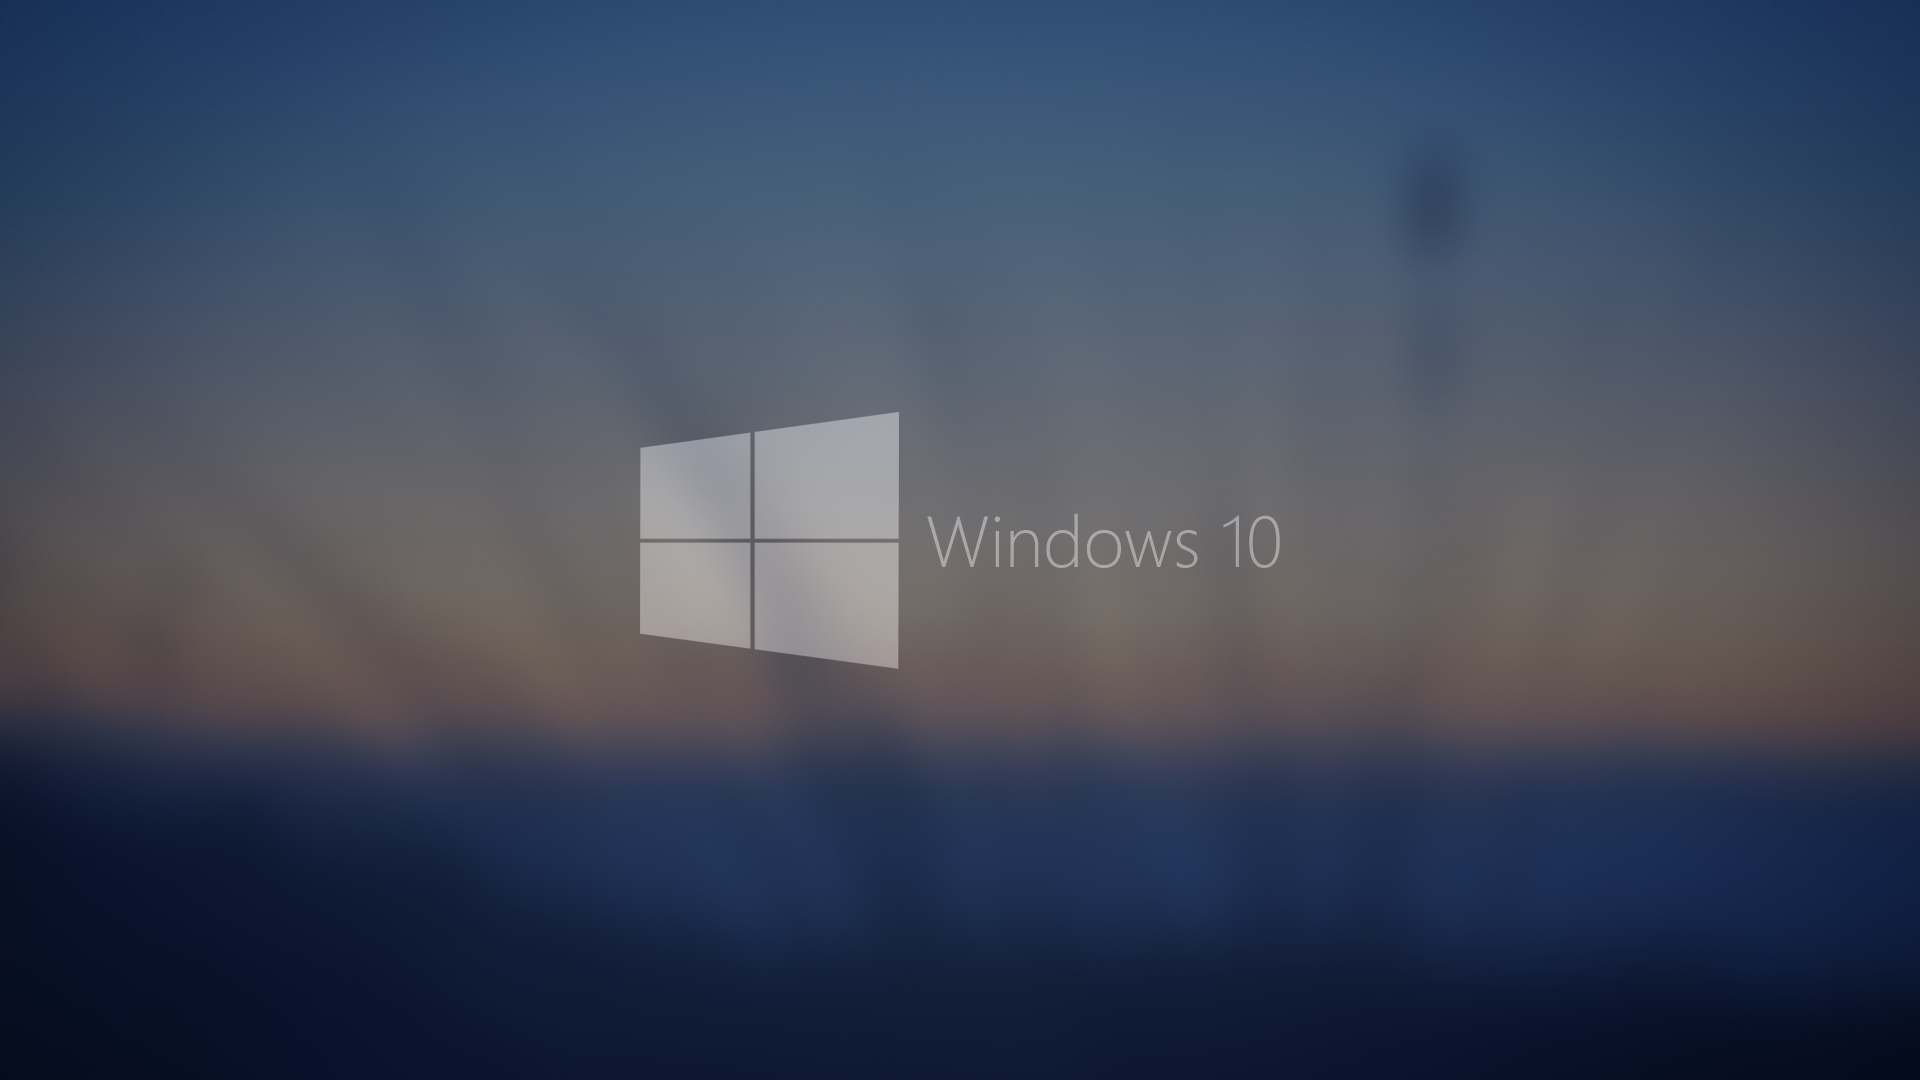 96 microsoft hd wallpapers background images wallpaper abyss hd wallpaper background image id637159 voltagebd Images